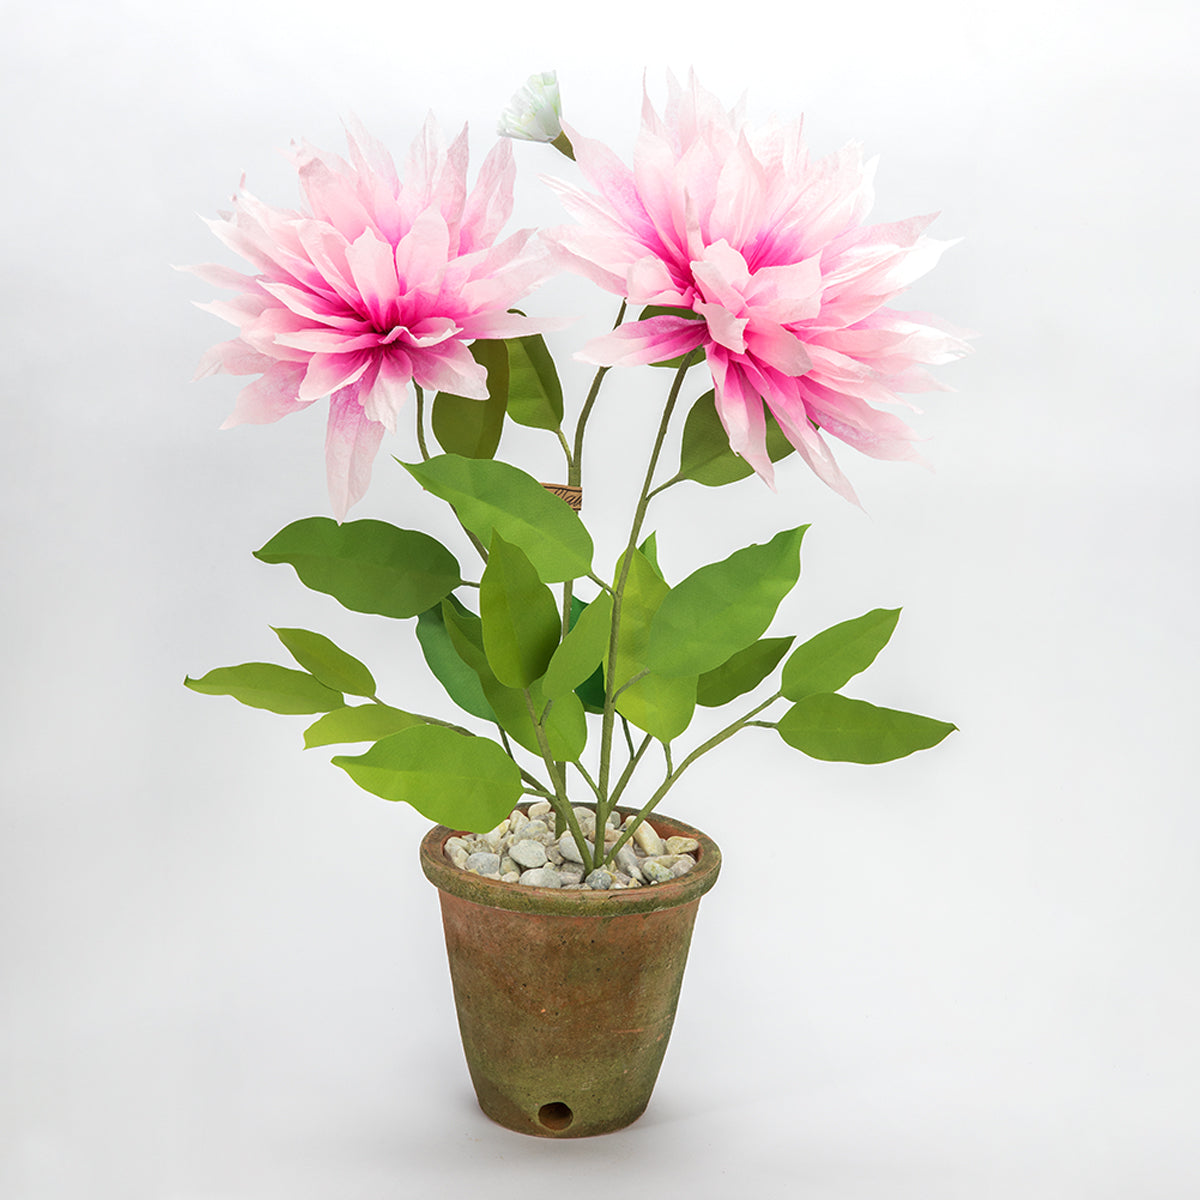 The Green Vase potted dahlia